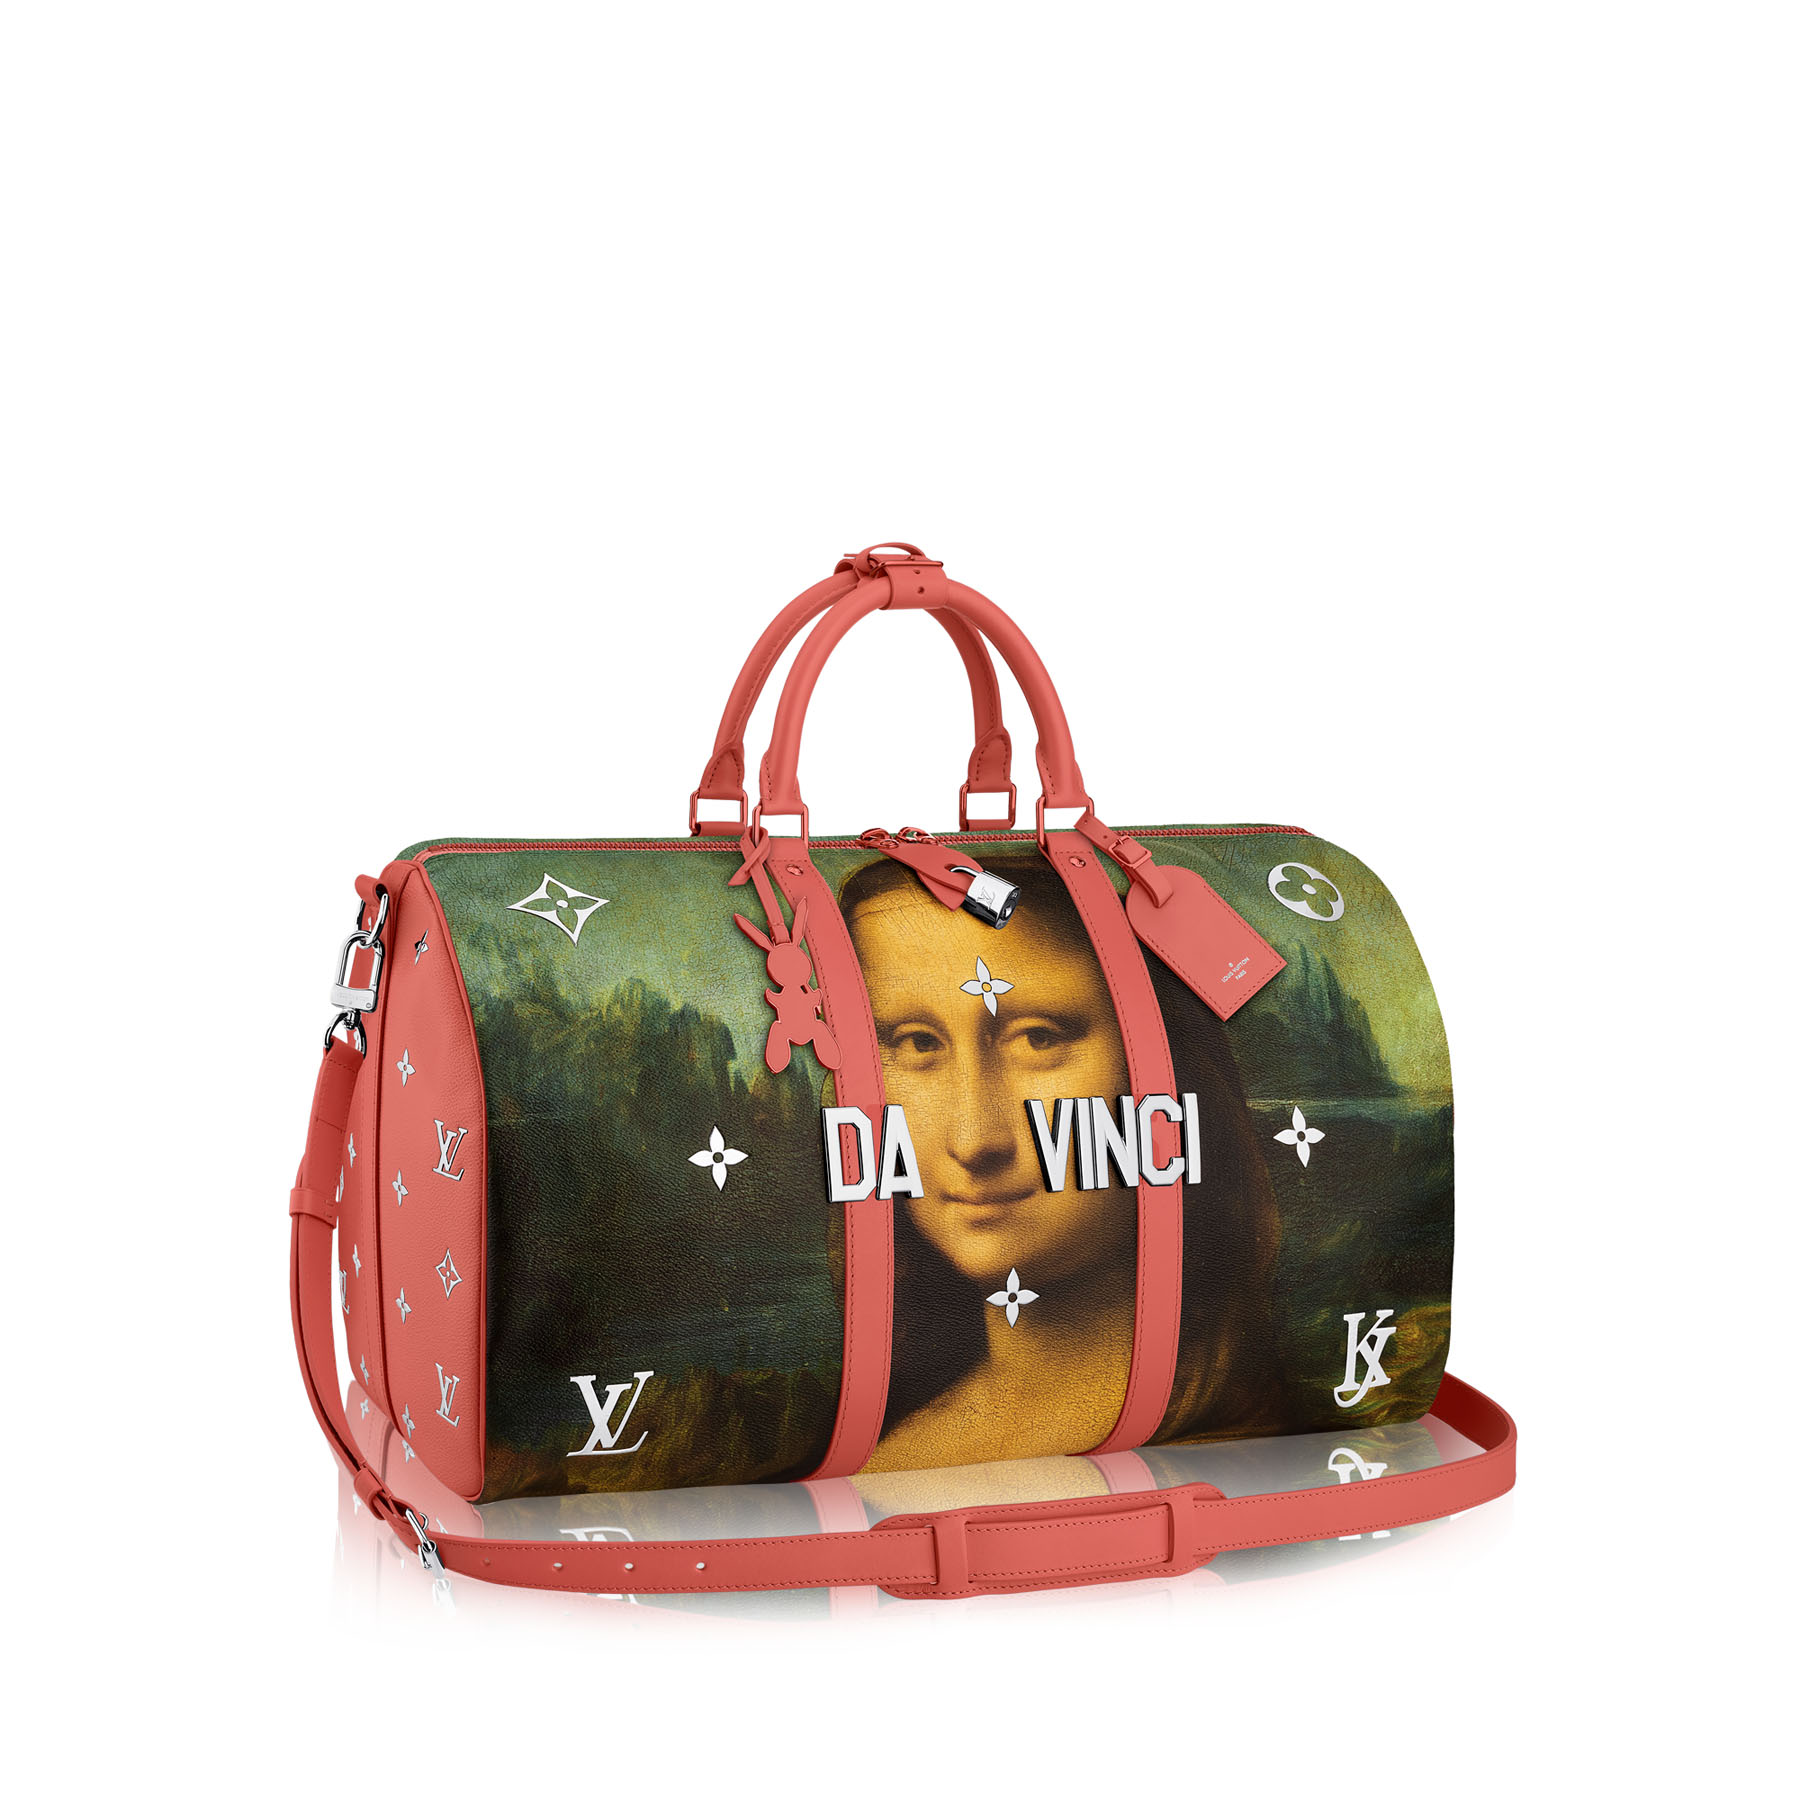 Louis-Vuitton-Jeff-Koons-Collaboration-the-impression-14